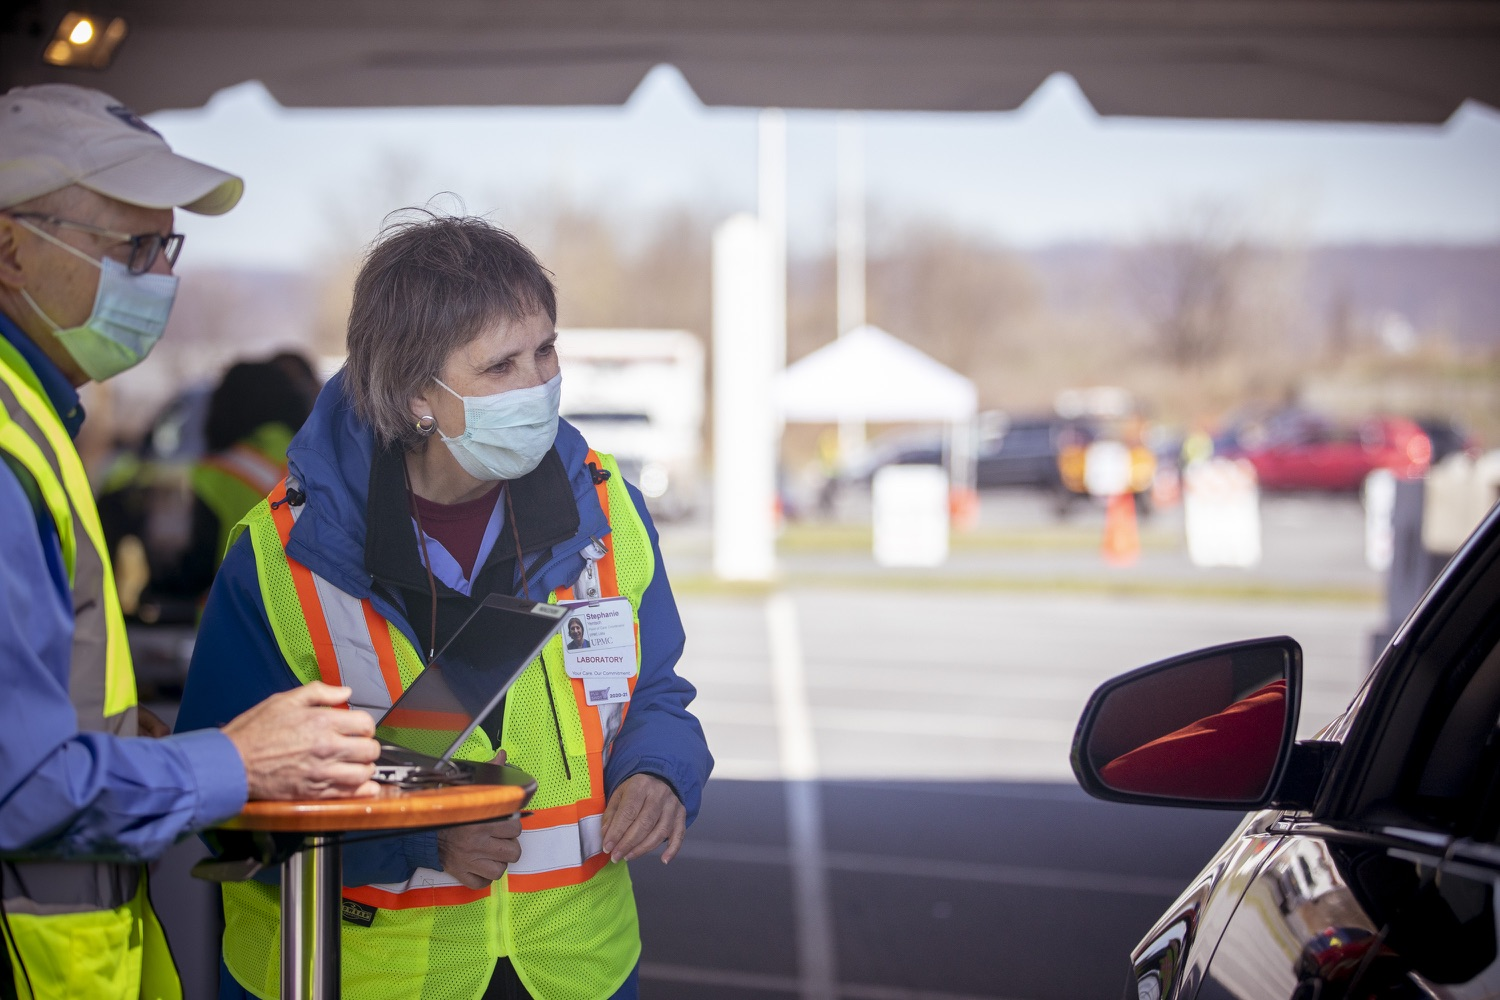 """<a href=""""https://filesource.wostreaming.net/commonwealthofpa/photo/18631_gov_hacc_vaccine_dz_019.jpg"""" target=""""_blank"""">⇣Download Photo<br></a>Workers at the vaccination site speaking with a driver.  Governor Wolf today visited the COVID-19 drive-thru mass vaccination clinic for Dauphin County residents at Harrisburg Area Community College. The drive-thru clinic was developed in partnership with UPMC Pinnacle and Dauphin County. He was joined by UPMC Pinnacle President Phil Guarneschelli and Dauphin County Commissioners Mike Pries and George P. Hartwick III.  HARRISBURG, PA -- March 30, 2021"""